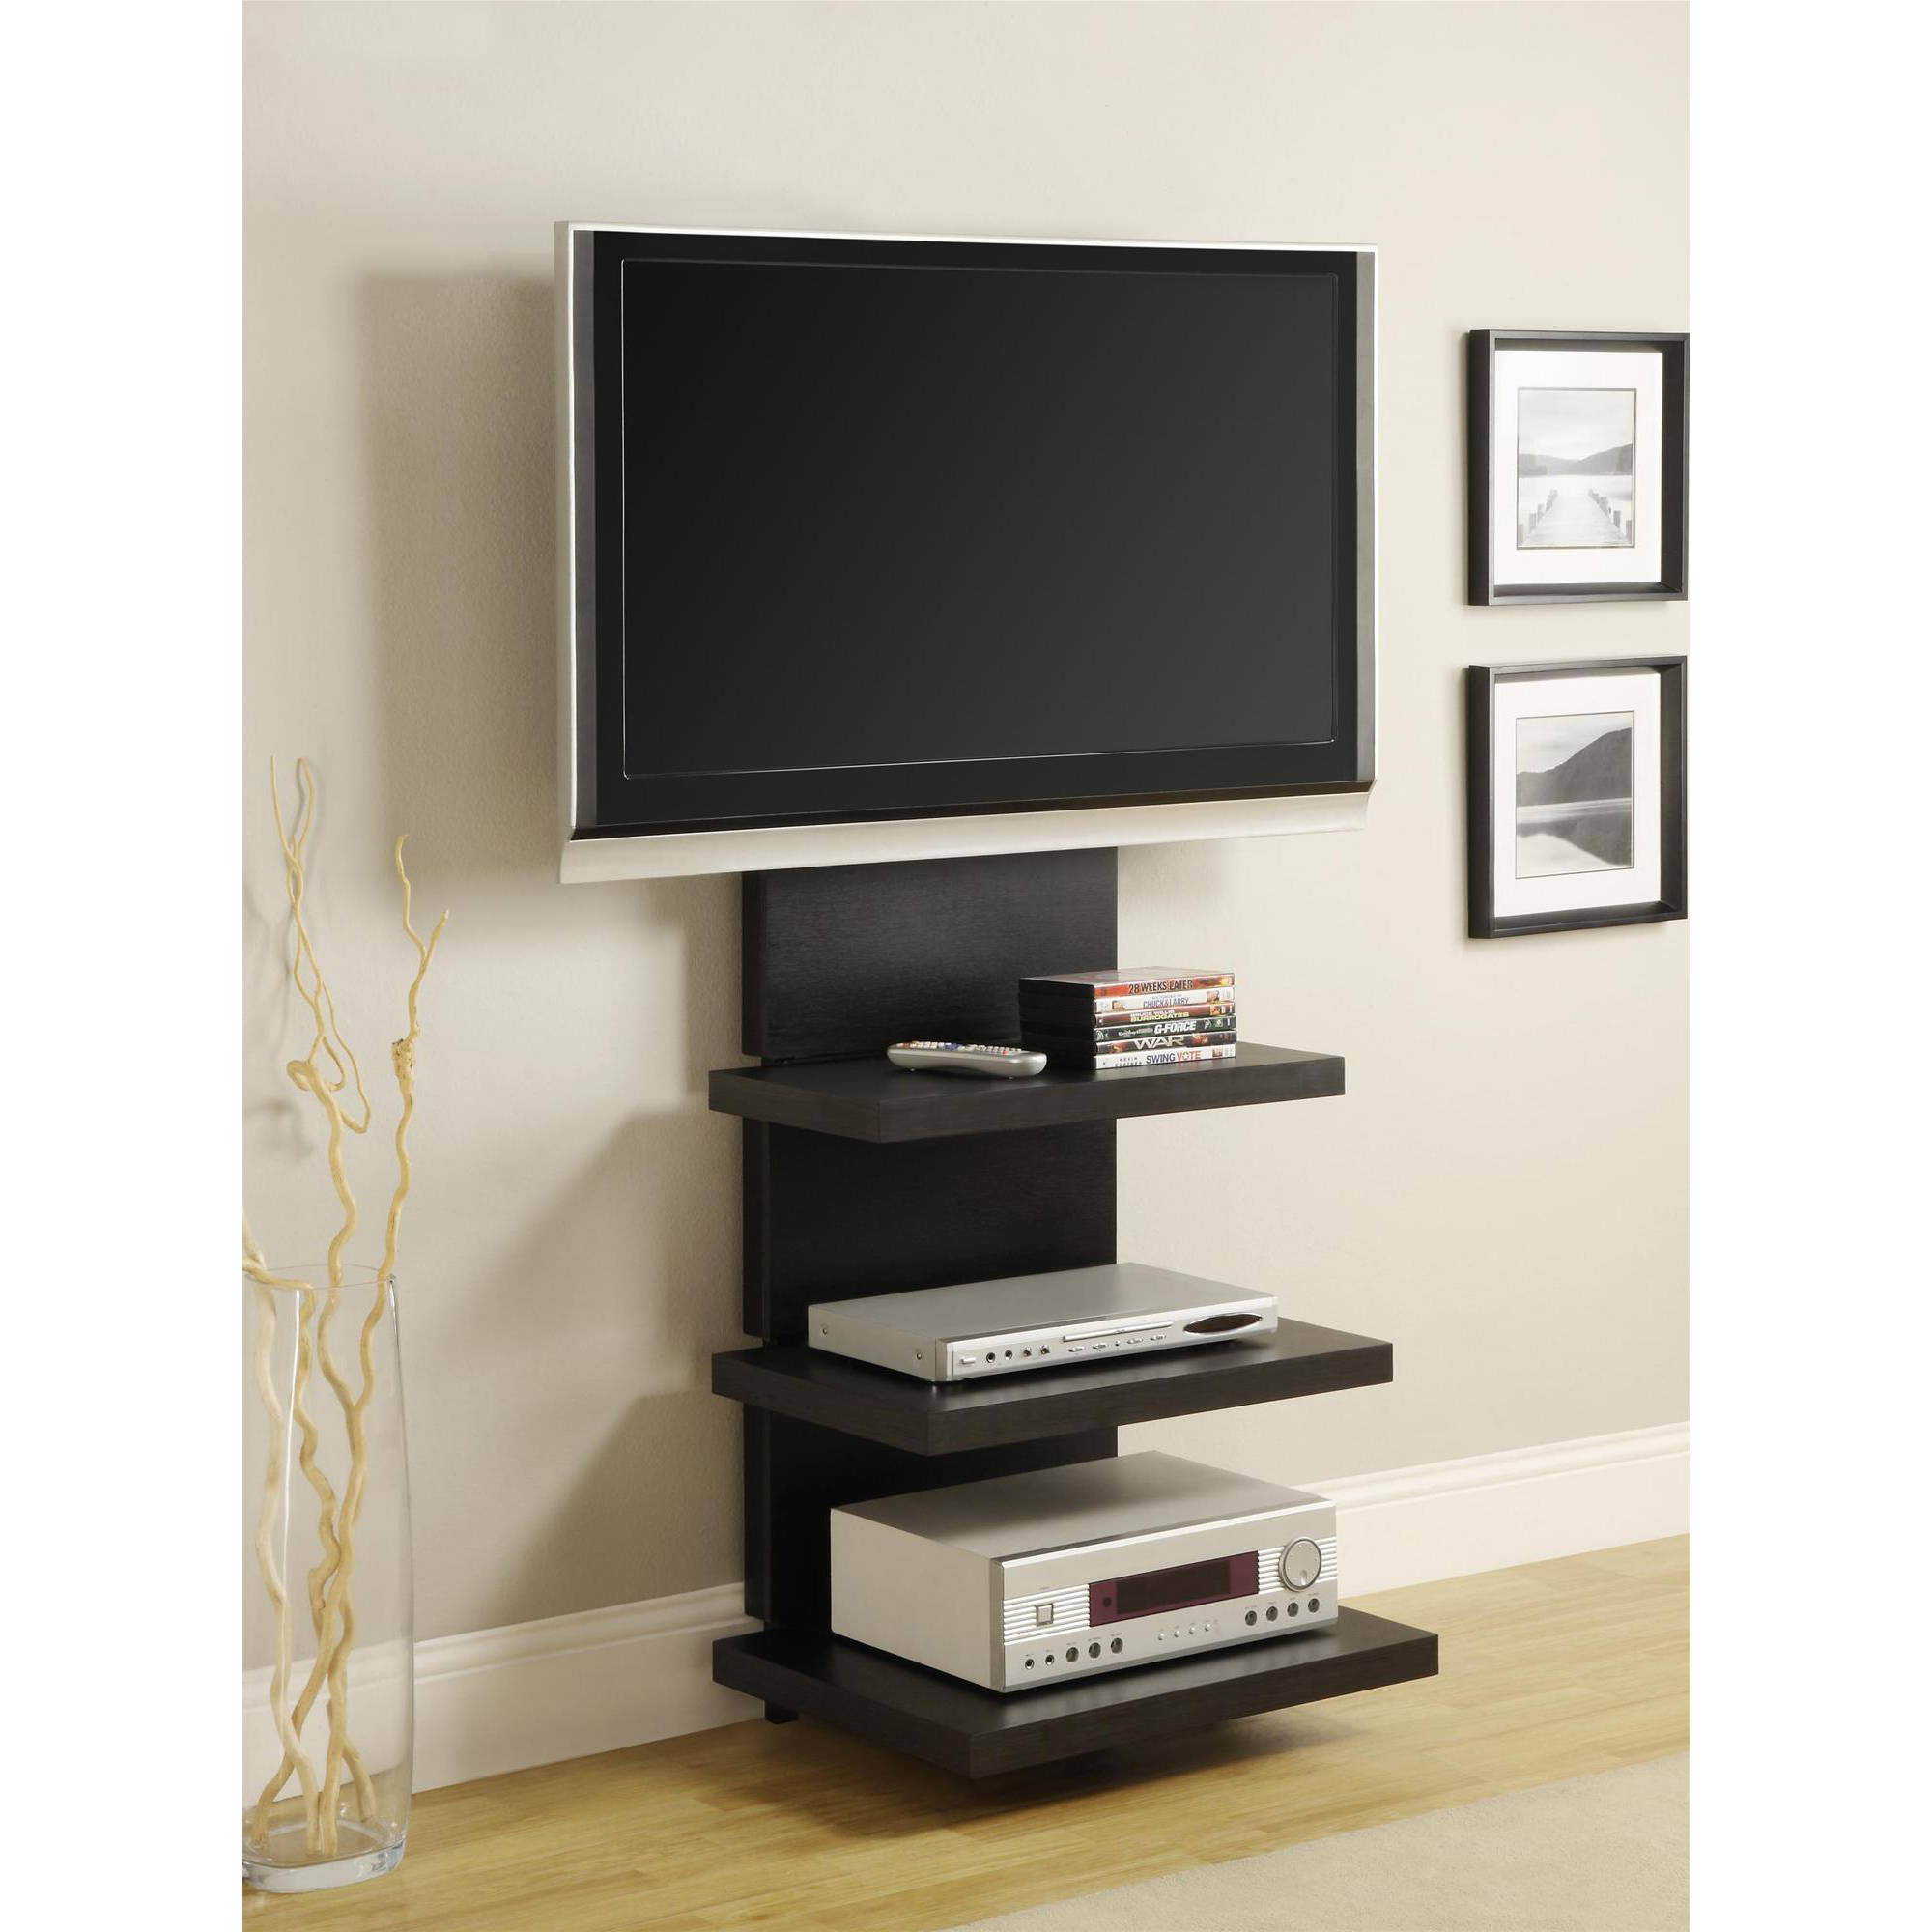 Wall Mount TV Stand with 3 Shelves, Black, for TVs up to 60""